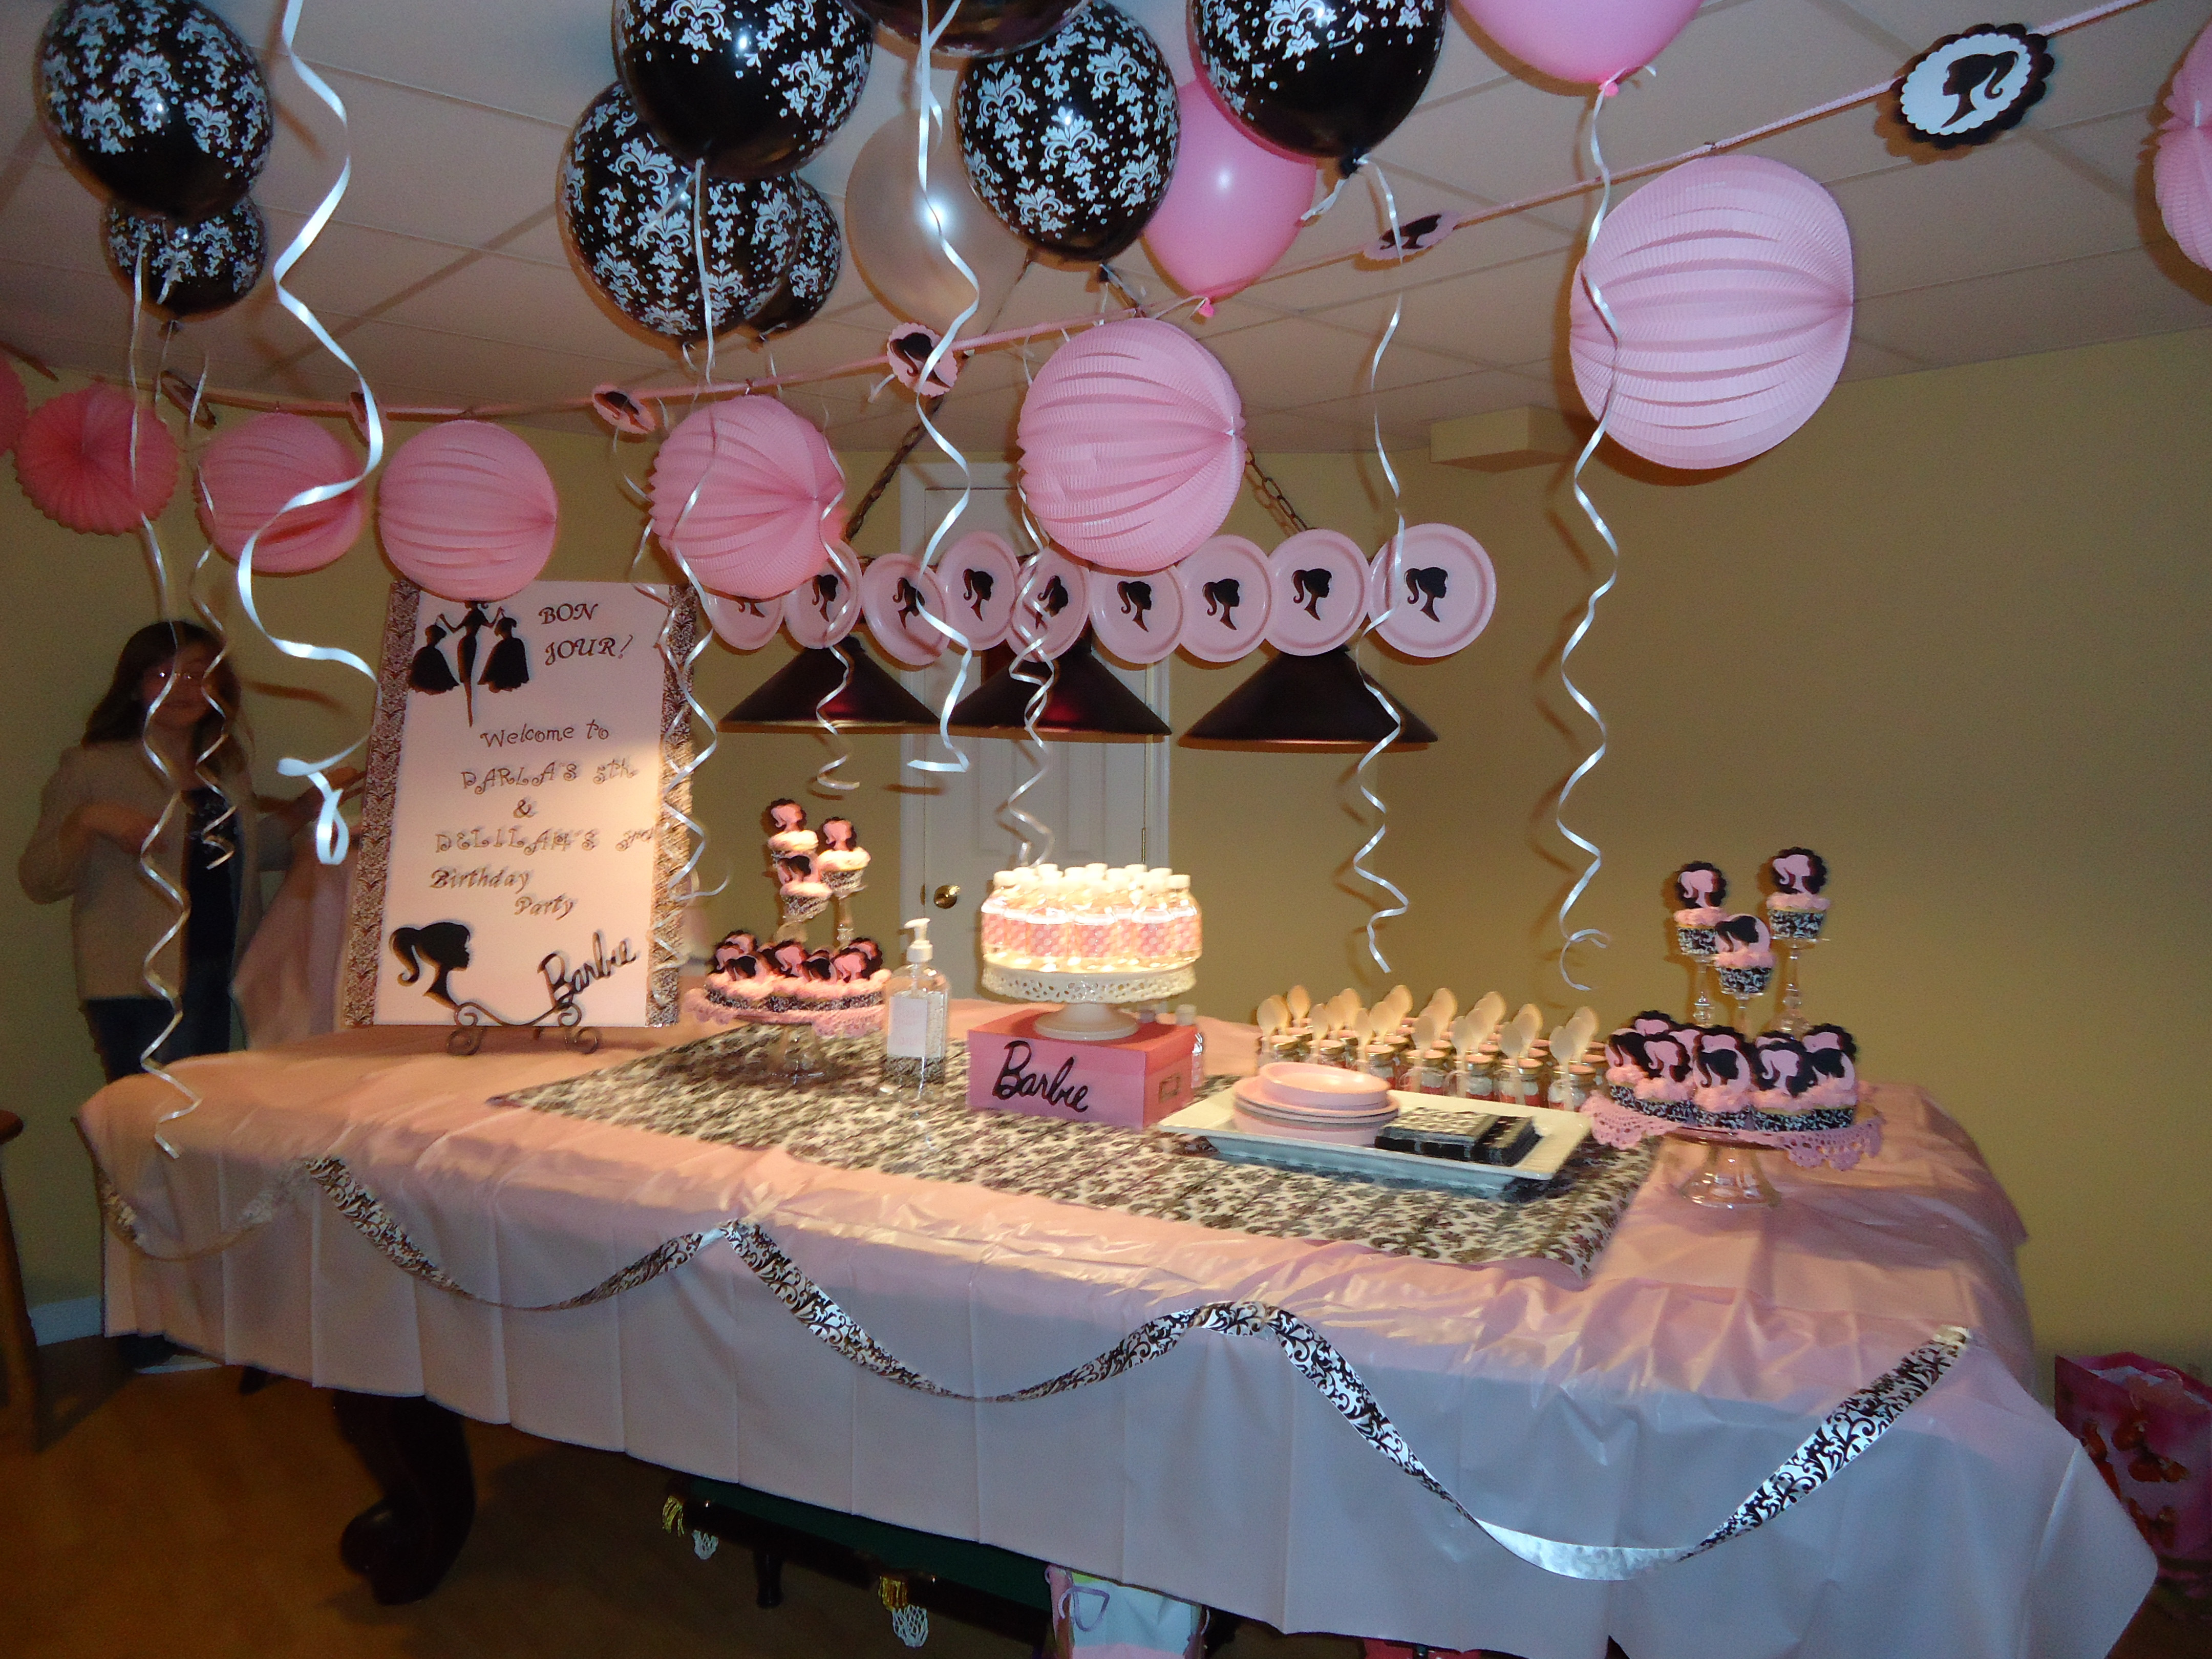 Best ideas about Barbie Birthday Party . Save or Pin A Barbie Birthday Party s Now.